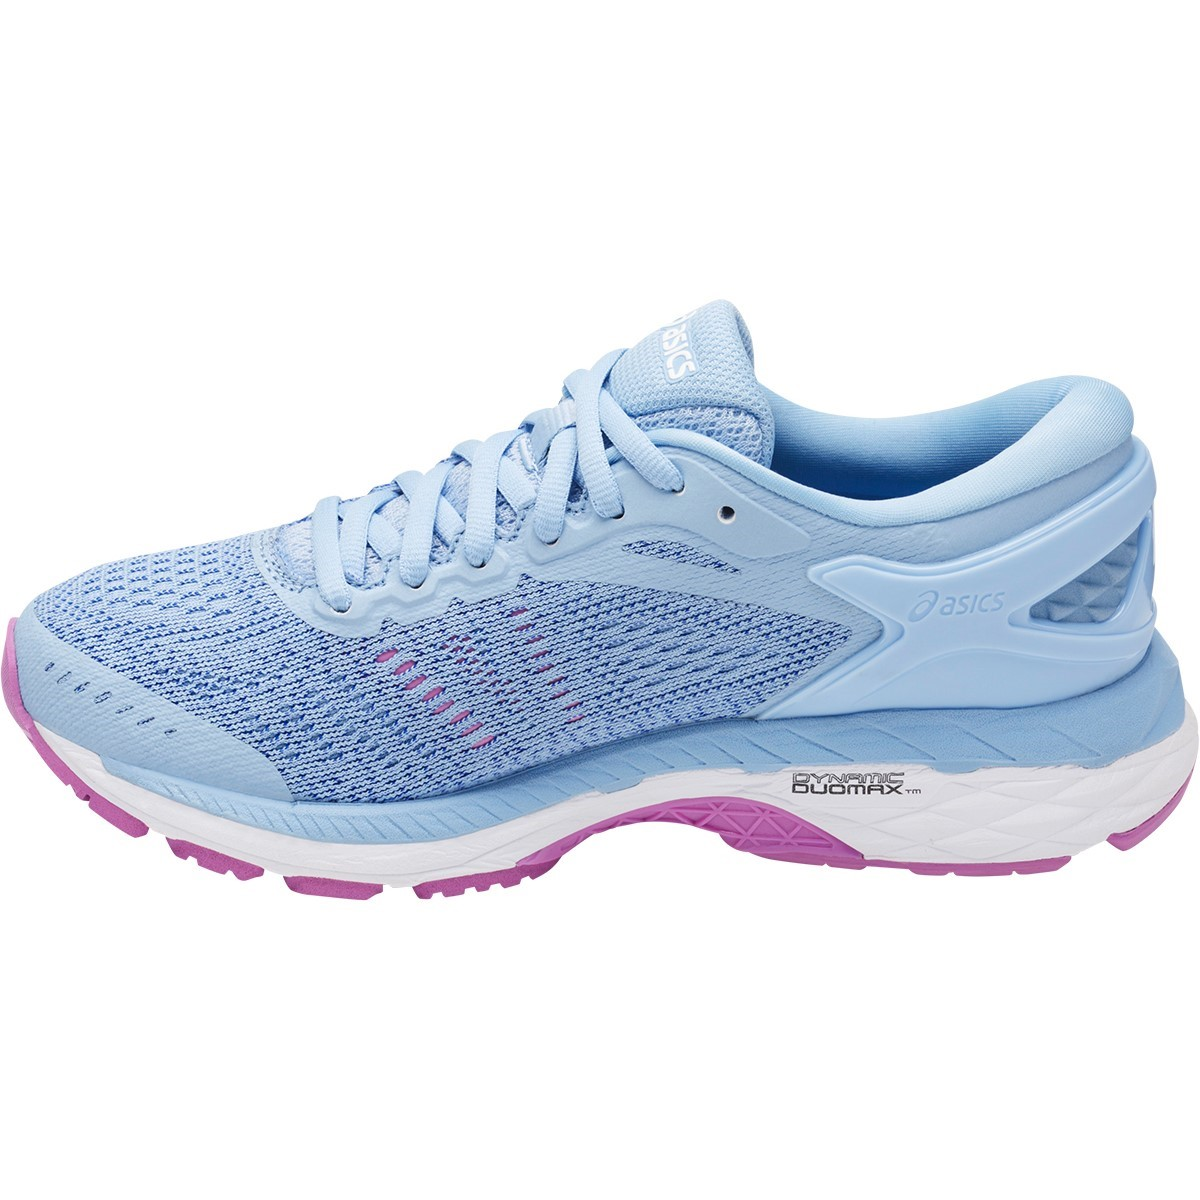 Asics Gel Kayano 24 GS - Kids Girls Running Shoes - Airy Blue/Regatta Blue